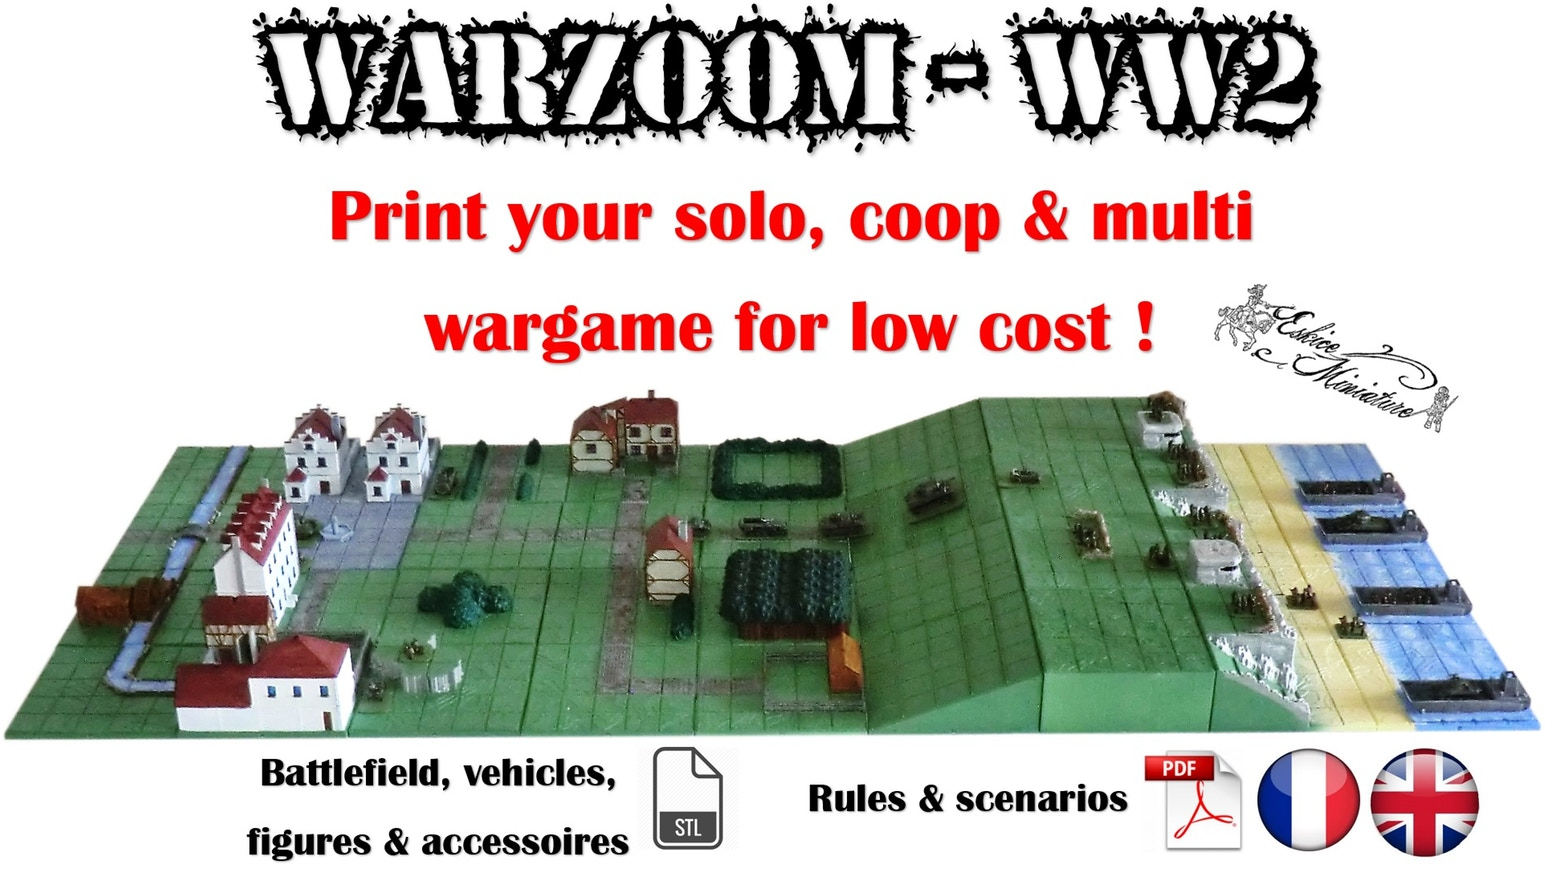 Warzoom WW 2 - Strategy game with figurines ! PYG - Tabletop